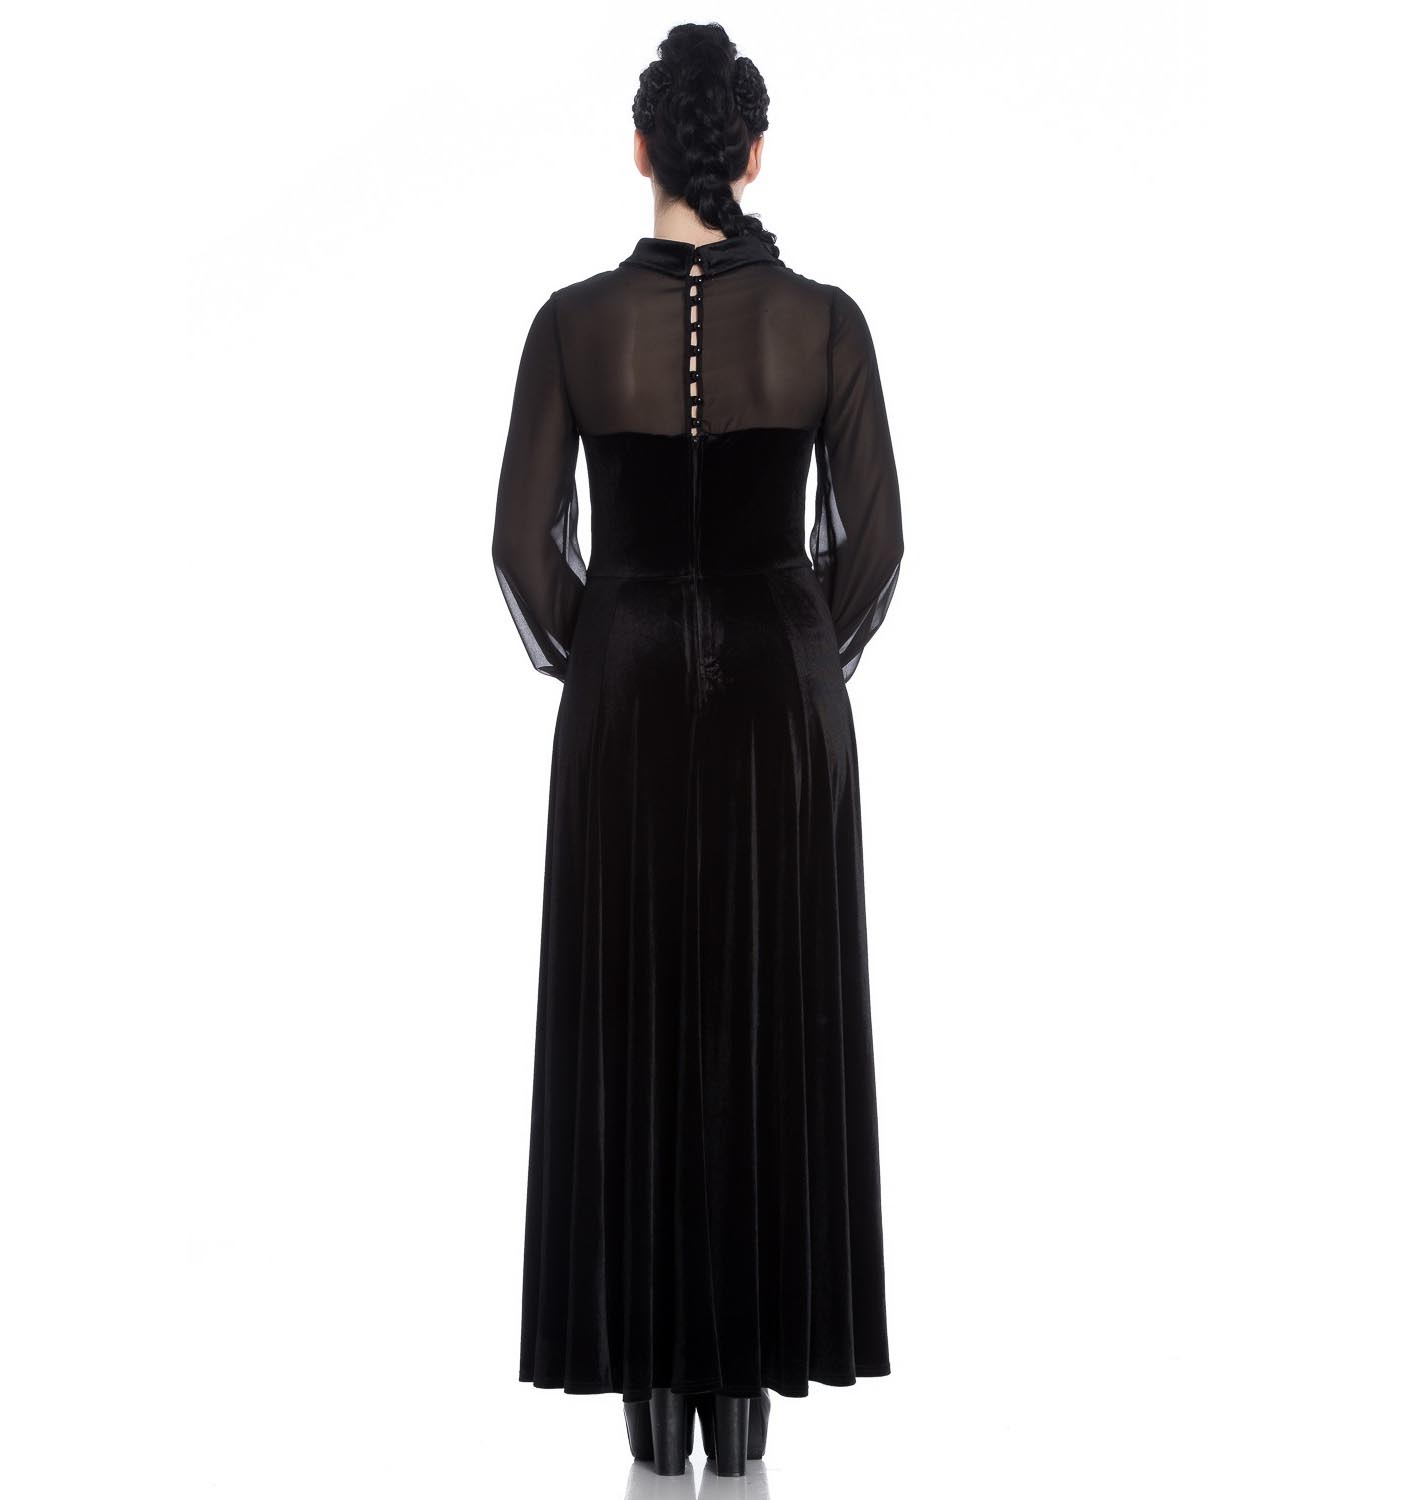 Hell-Bunny-Vampire-Goth-Elegant-Maxi-Dress-ESTELLE-Black-Velvet-Mesh-All-Sizes thumbnail 13